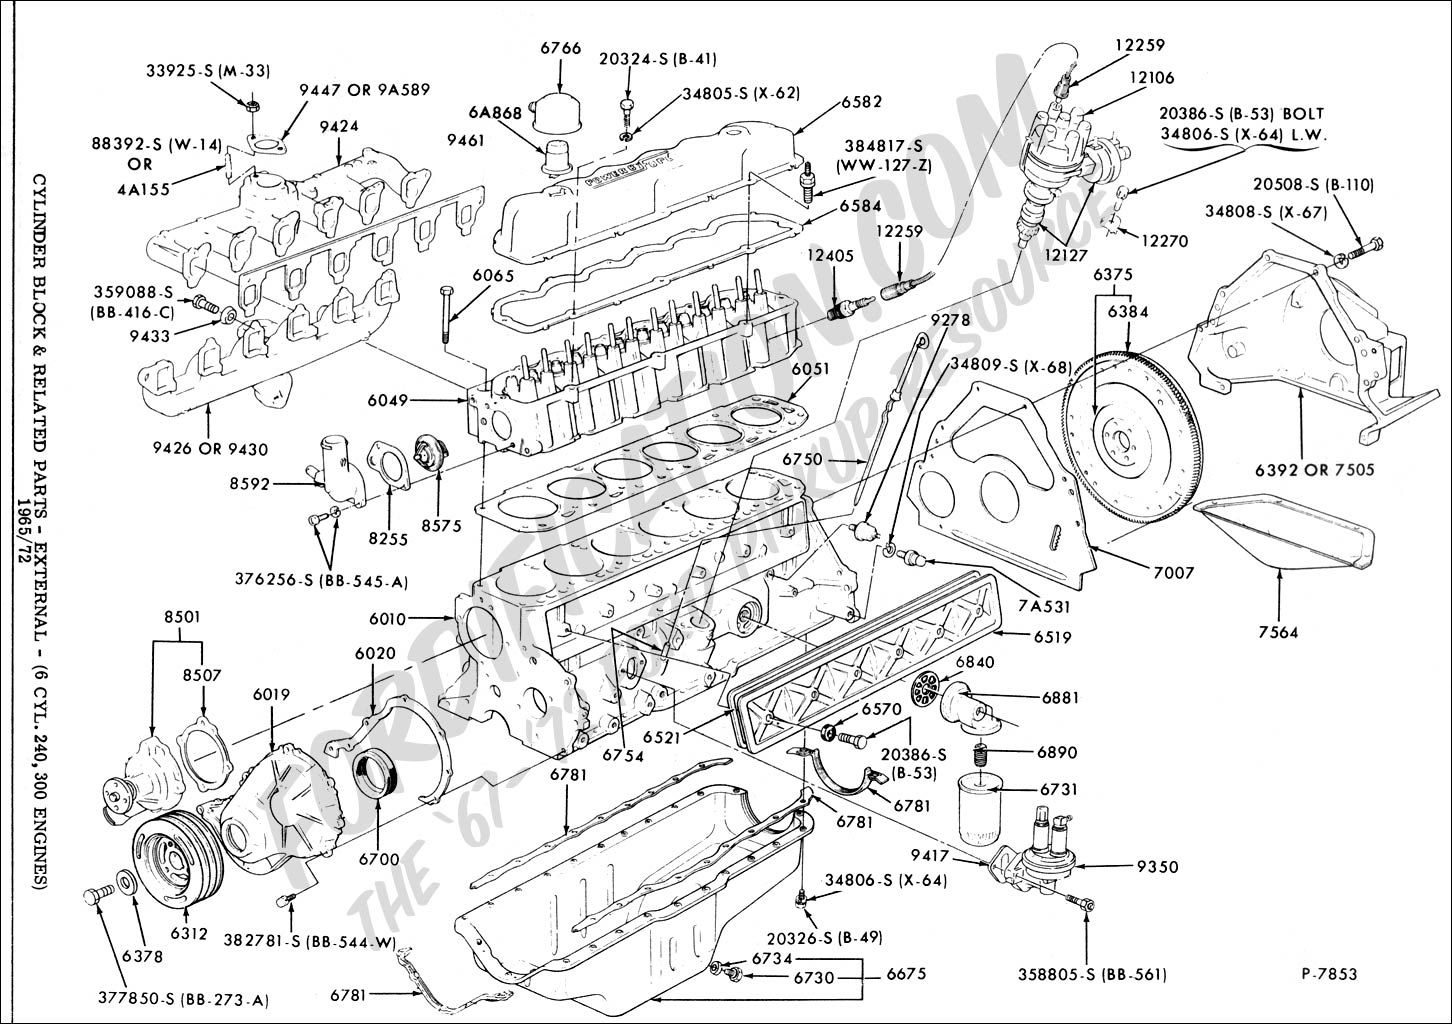 4 9 cadillac engine diagram automotive block diagram u2022 rh carwiringdiagram today Ford 4.9 Engine Repairs Ford 4.9 Intake Manifold